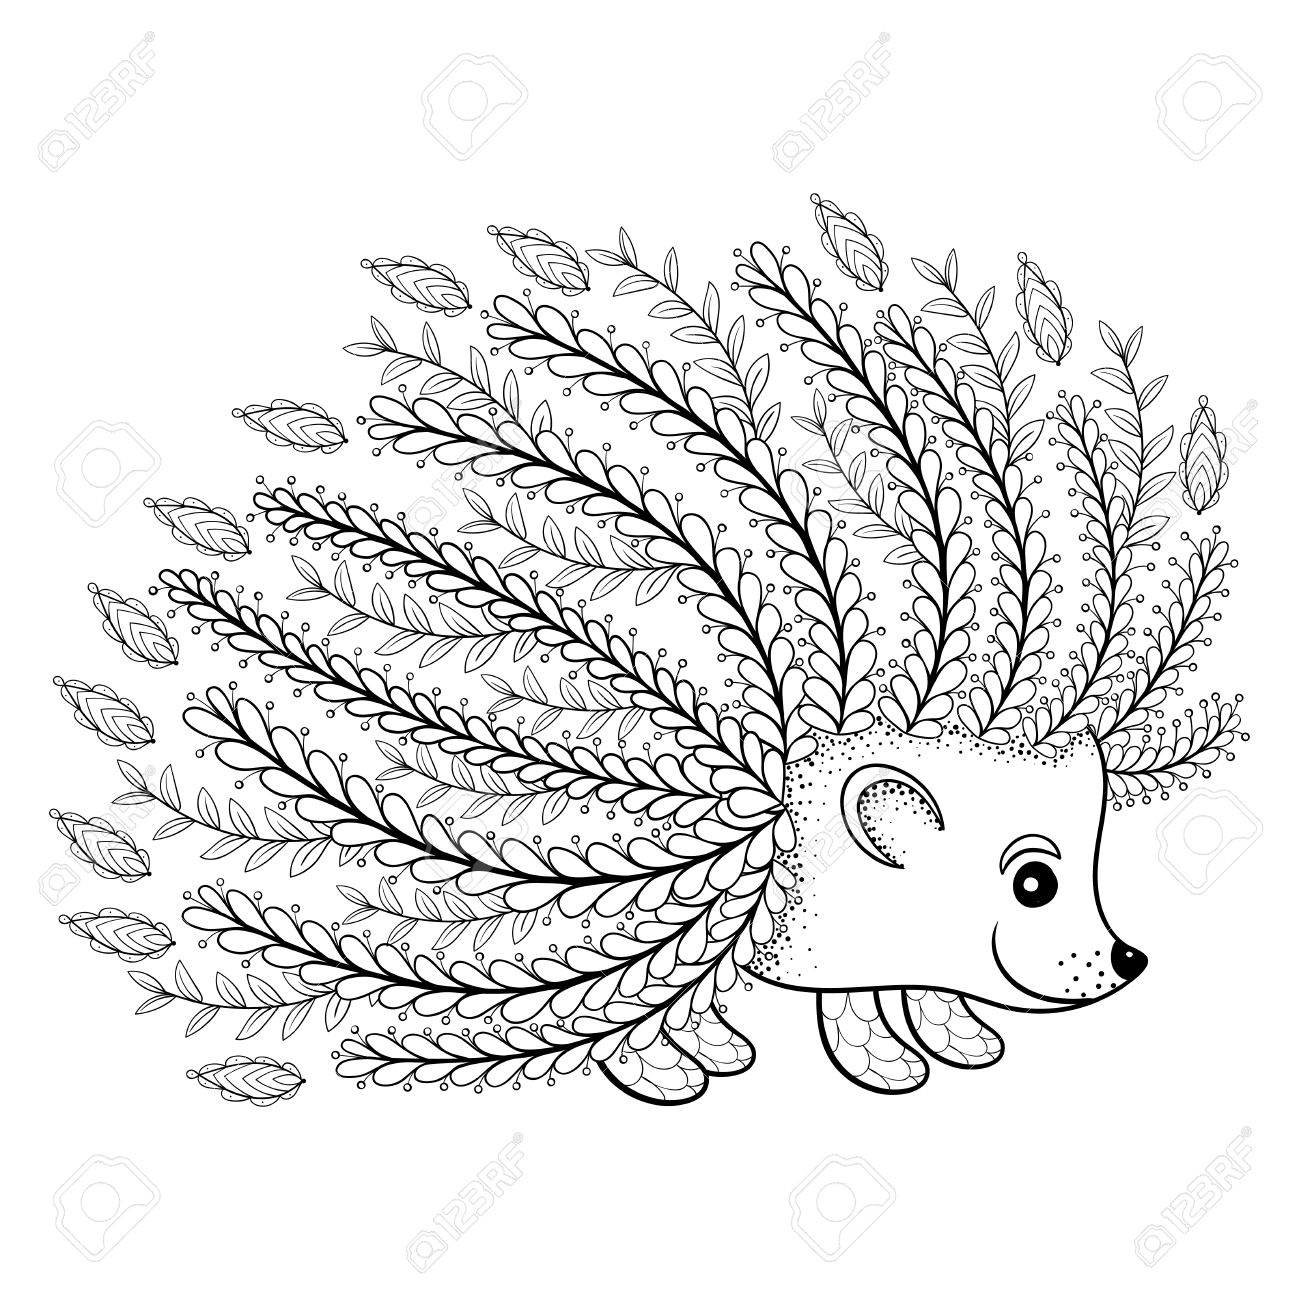 1299x1300 Hand Drawn Artistic Hedgehog For Adult Coloring Page In Doodle